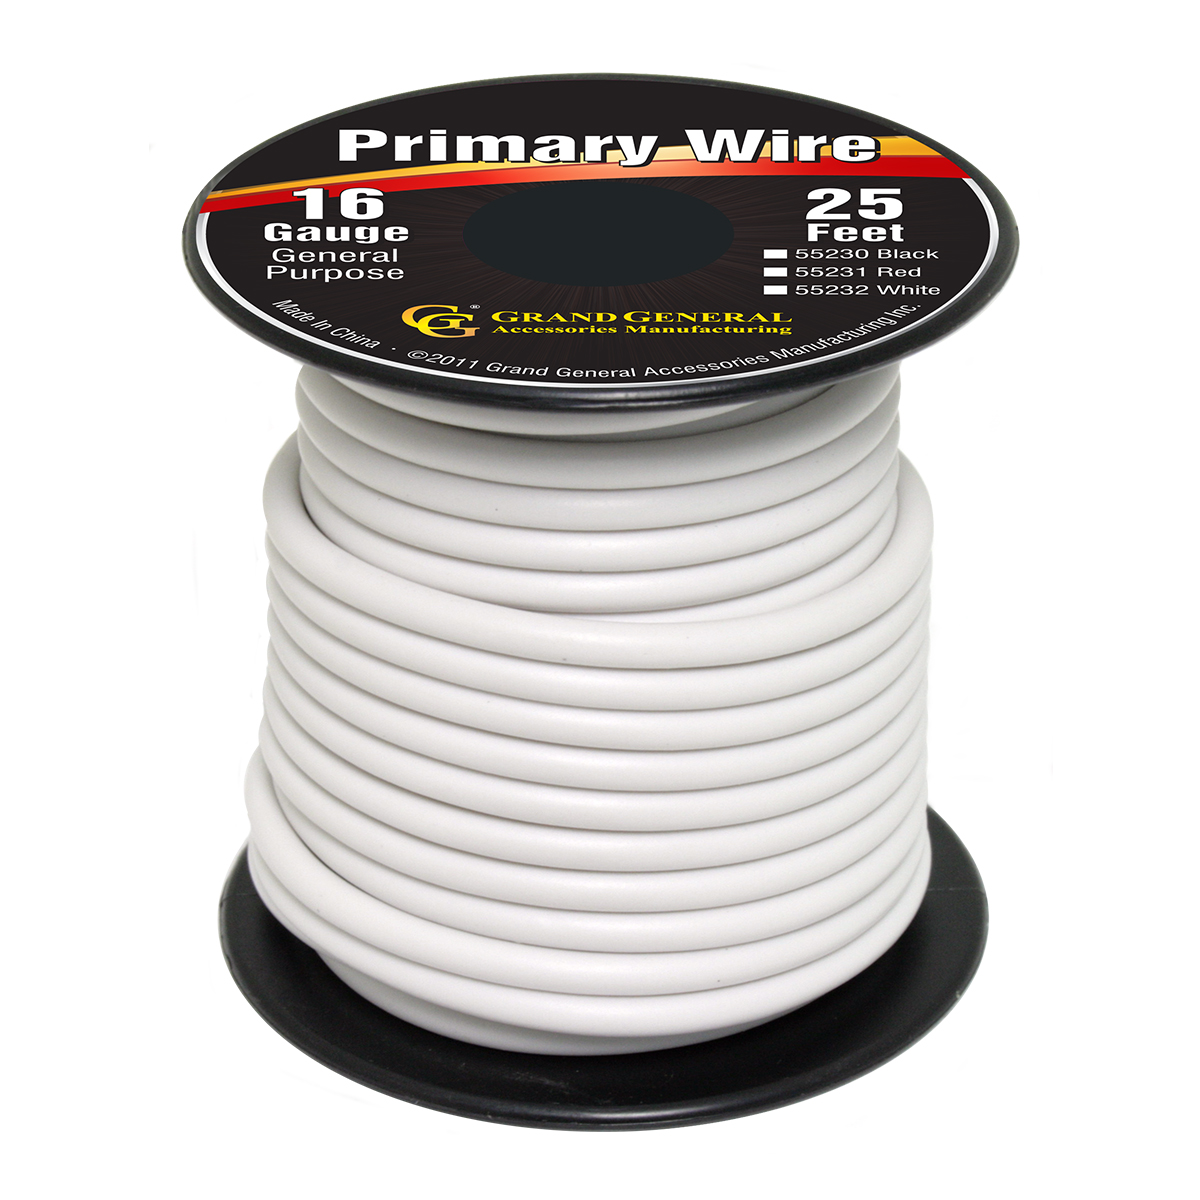 55232/55232SP Primary Wire in 16 Gauge, 25 Feet